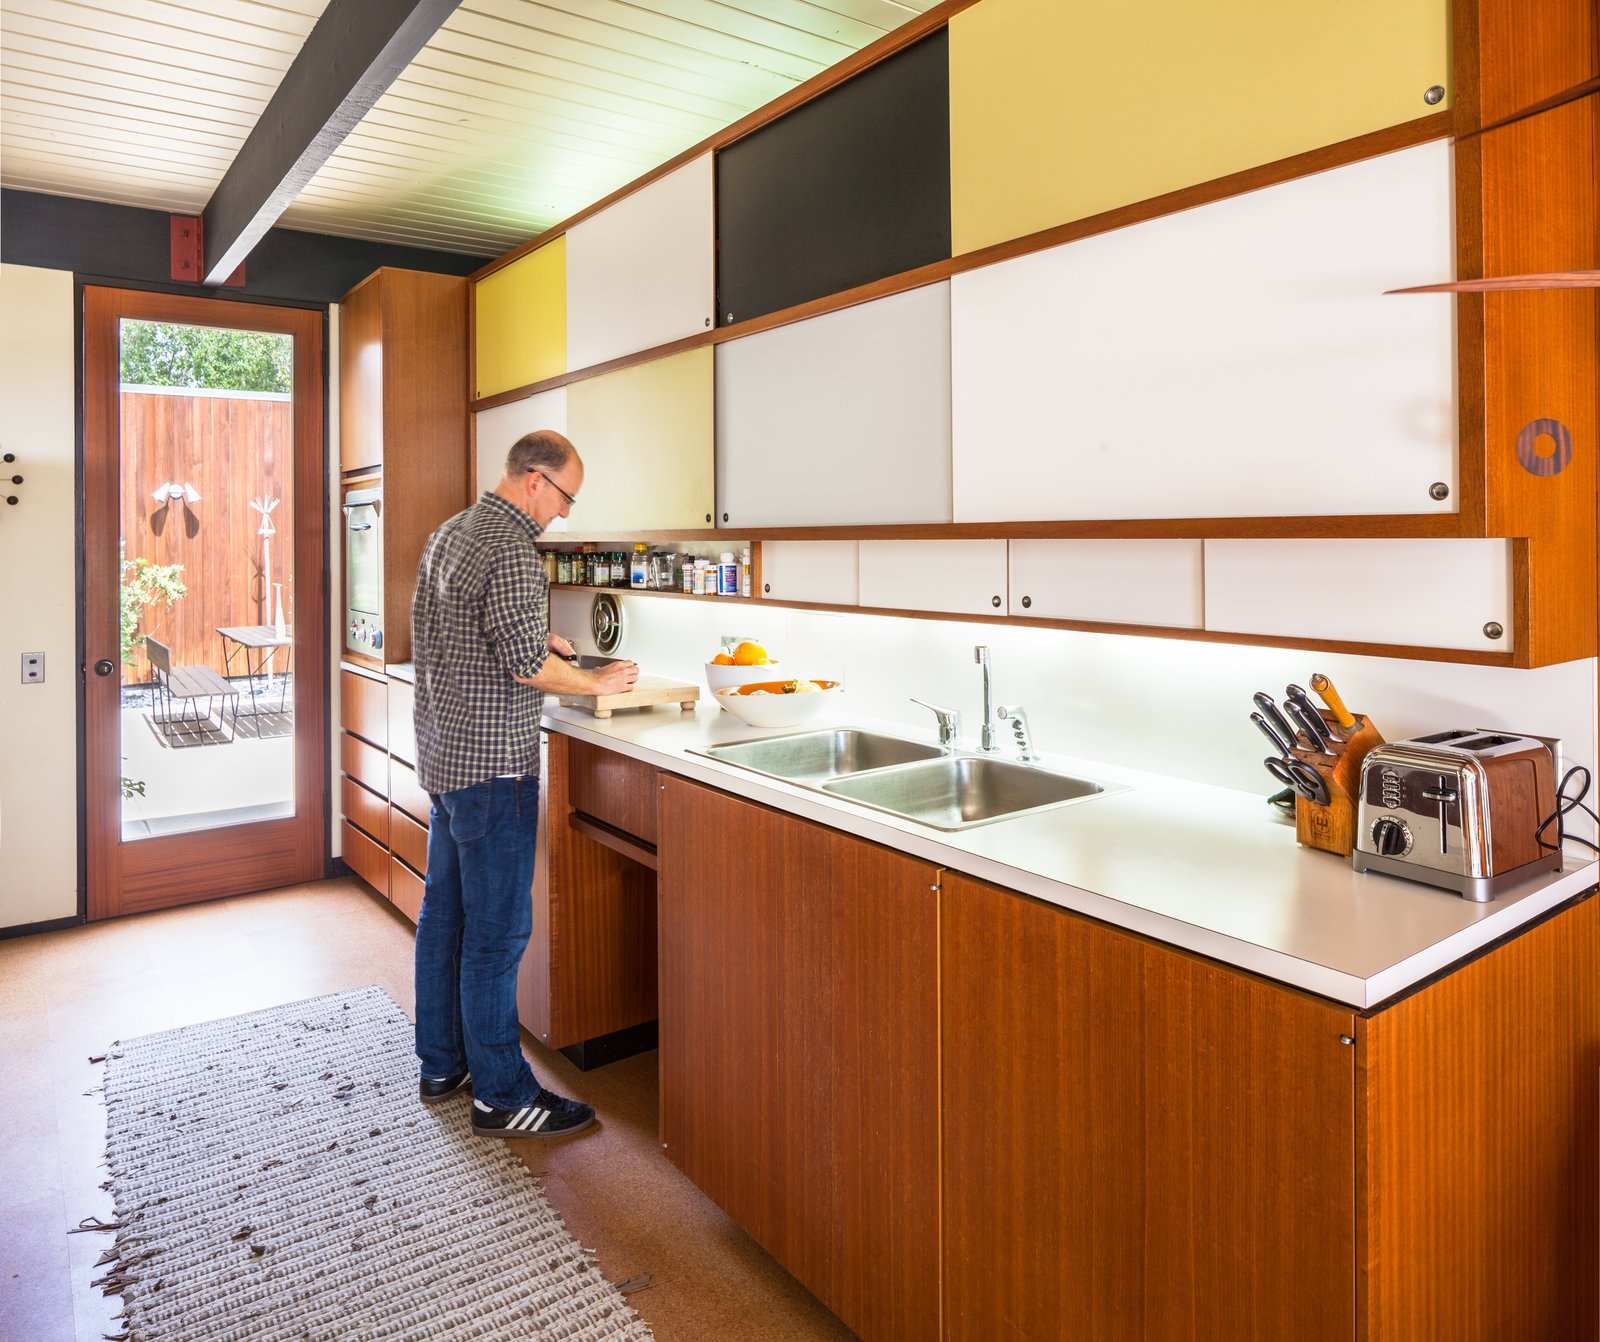 Kitchen, Colorful Cabinet, Cork Floor, and Drop In Sink  Photo 5 of 10 in A Stunningly Restored Midcentury by Case Study Architect Craig Ellwood Asks $800K in San Diego